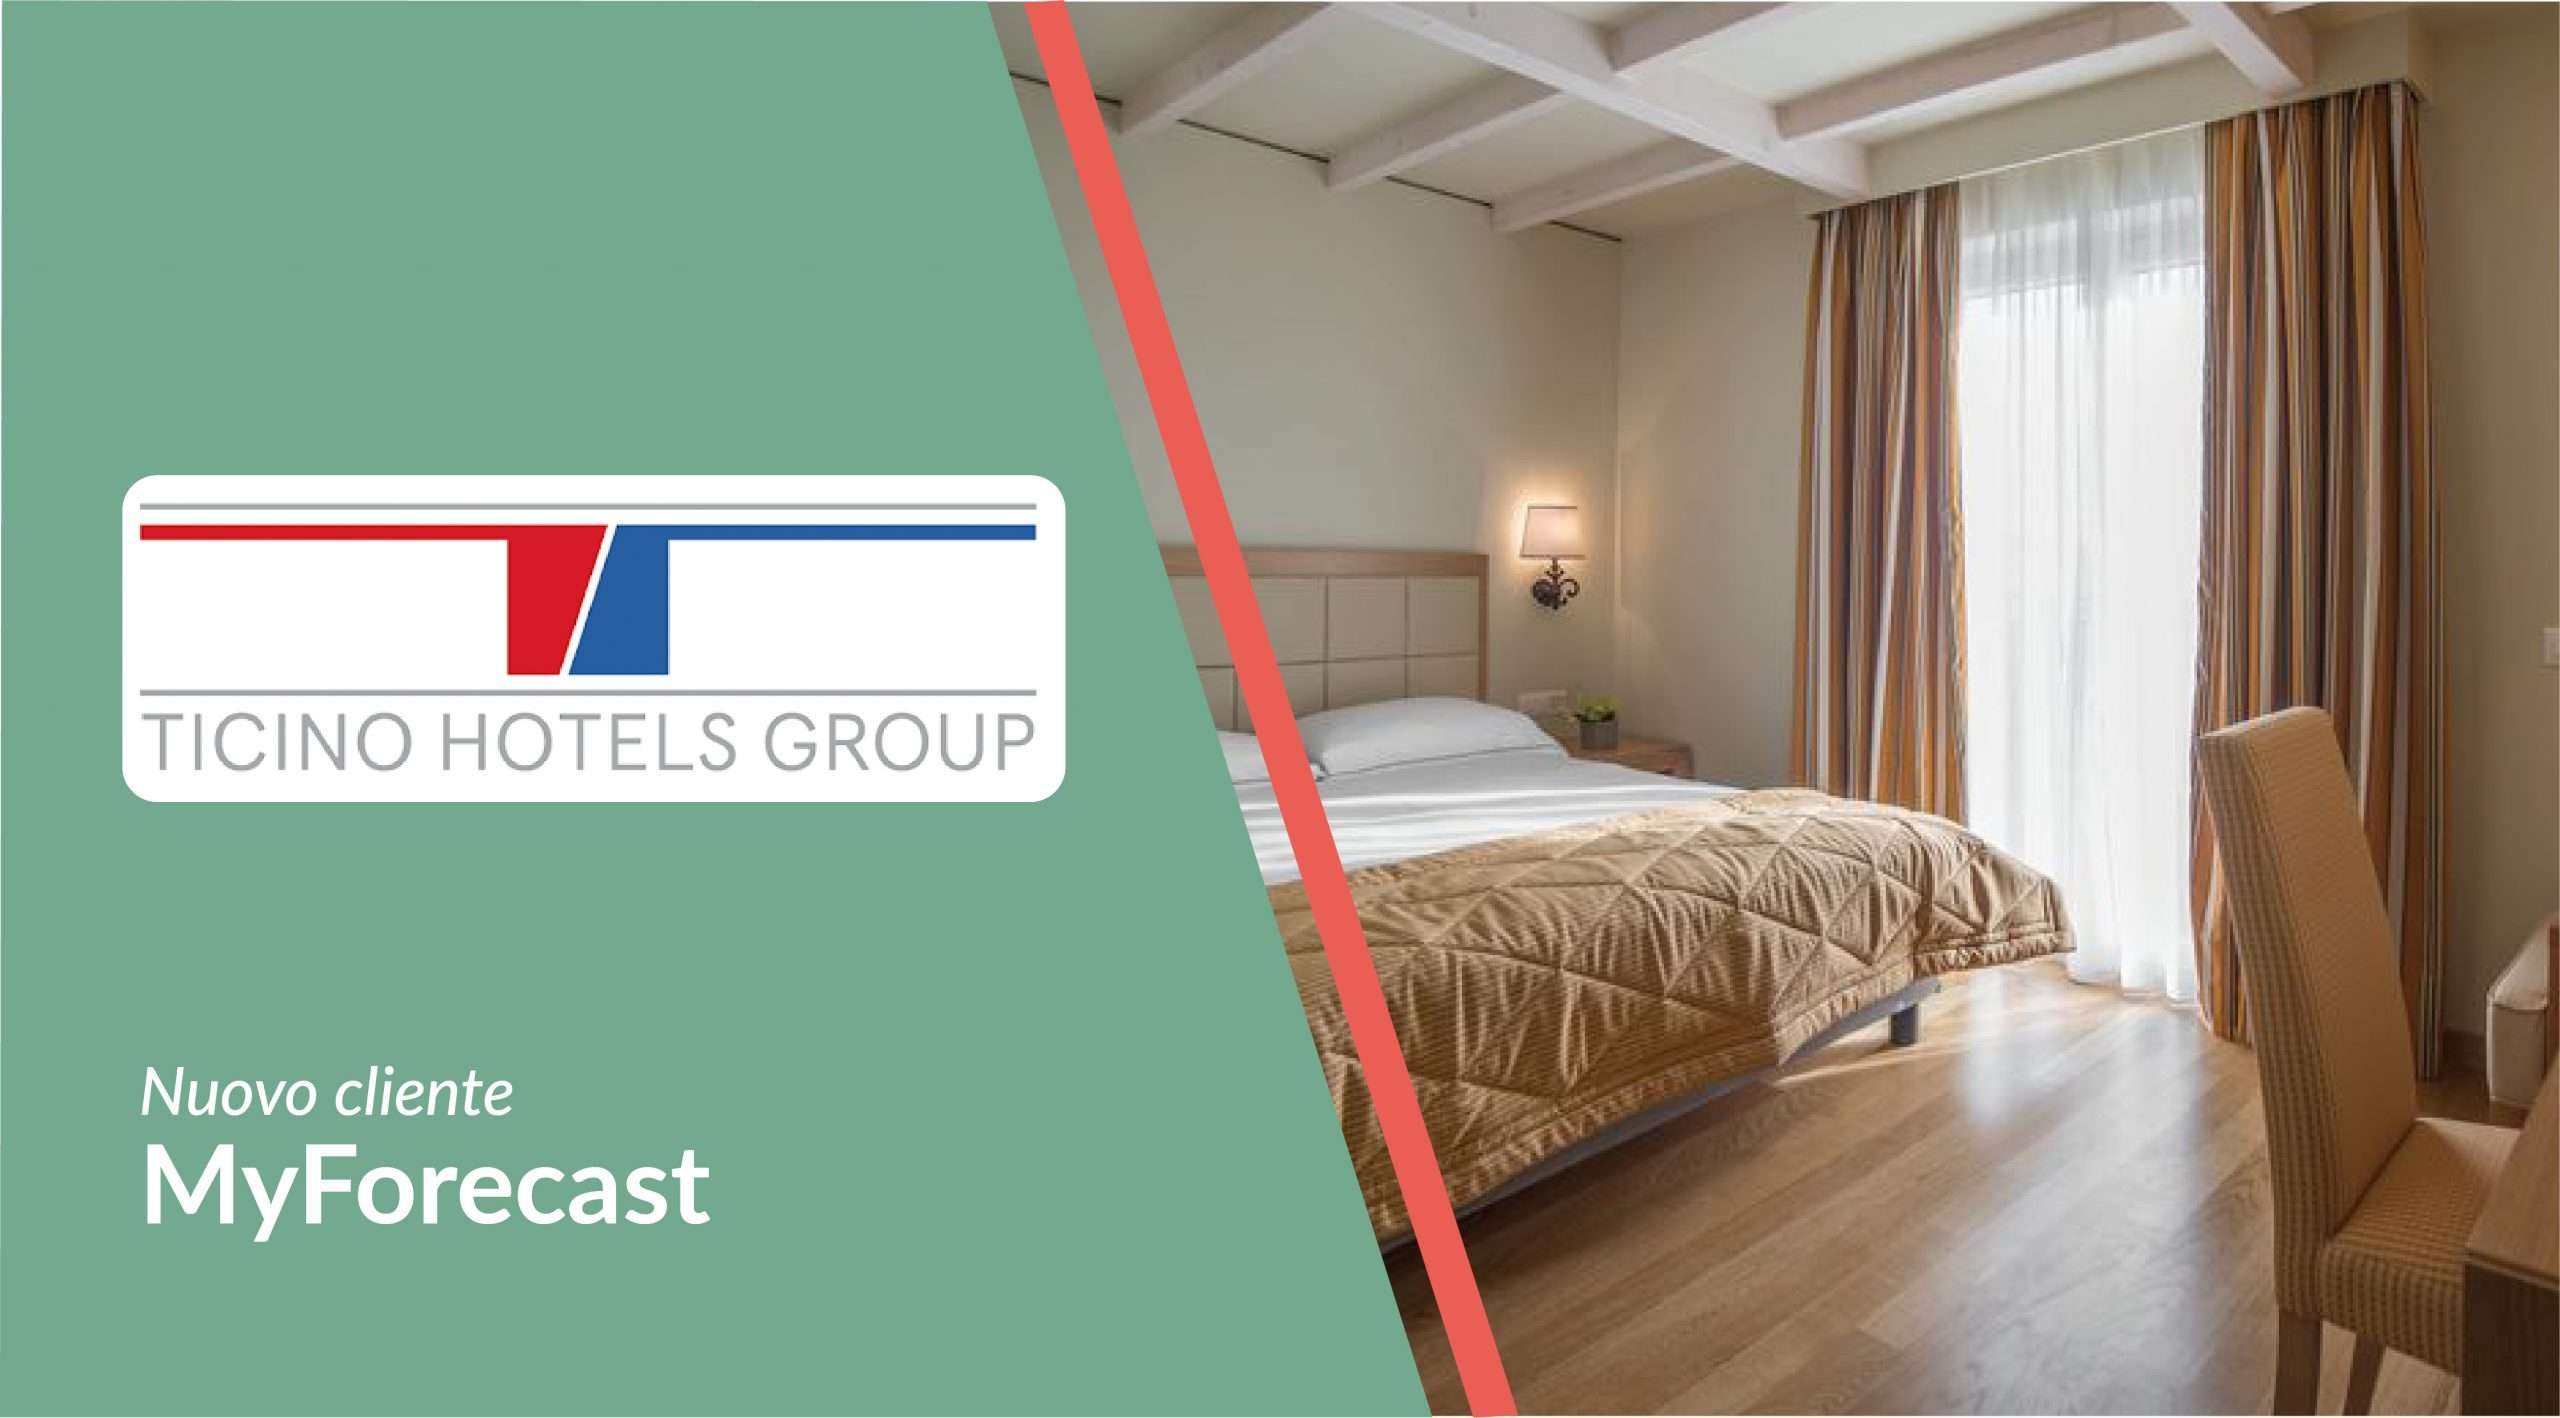 Nuovo Cliente: Ticino Hotels Group